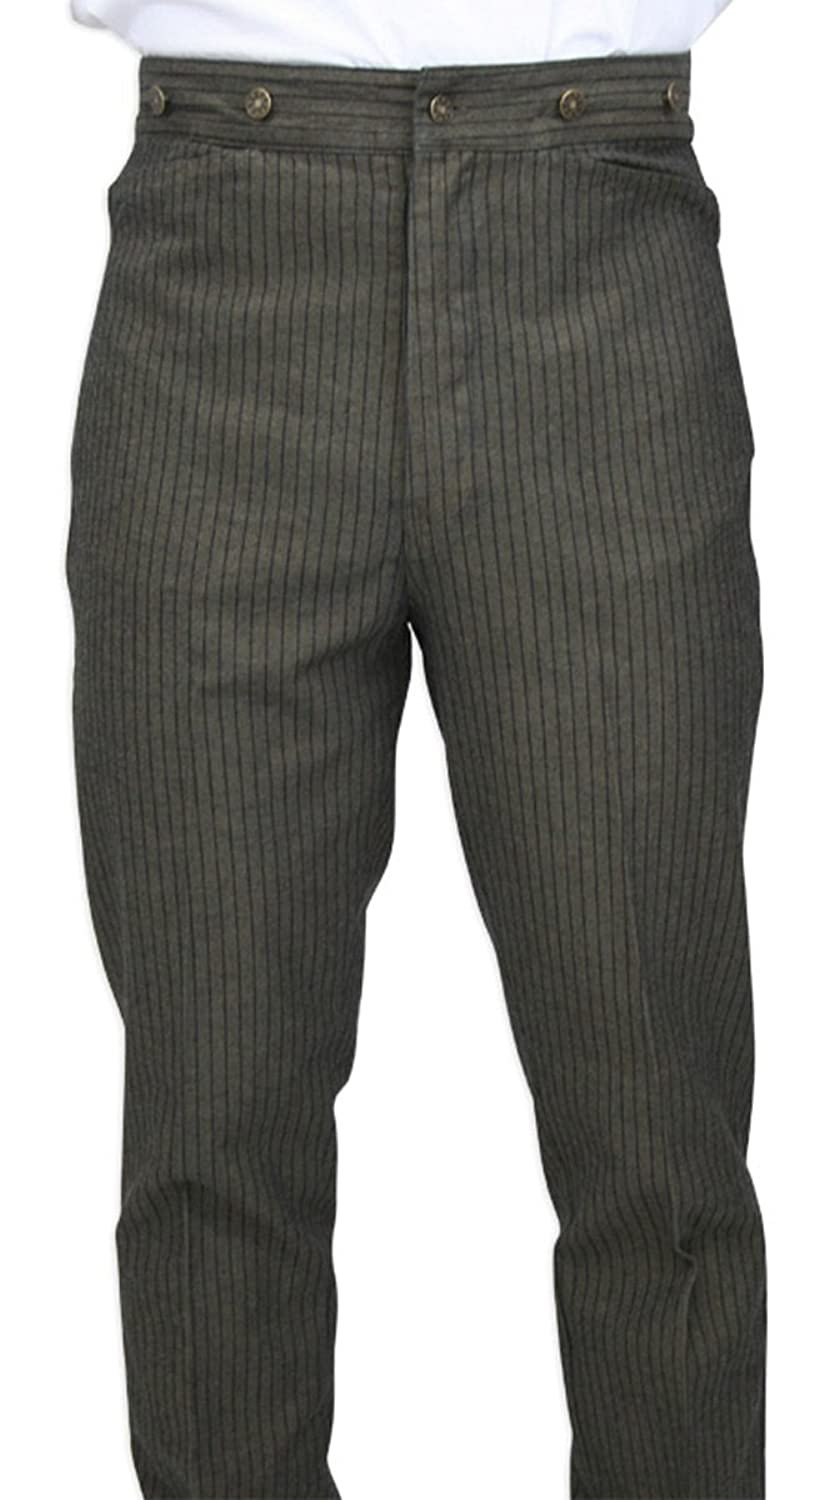 Edwardian Men's Fashion & Clothing High Waist Cotton Ludlow Striped Trousers $59.95 AT vintagedancer.com